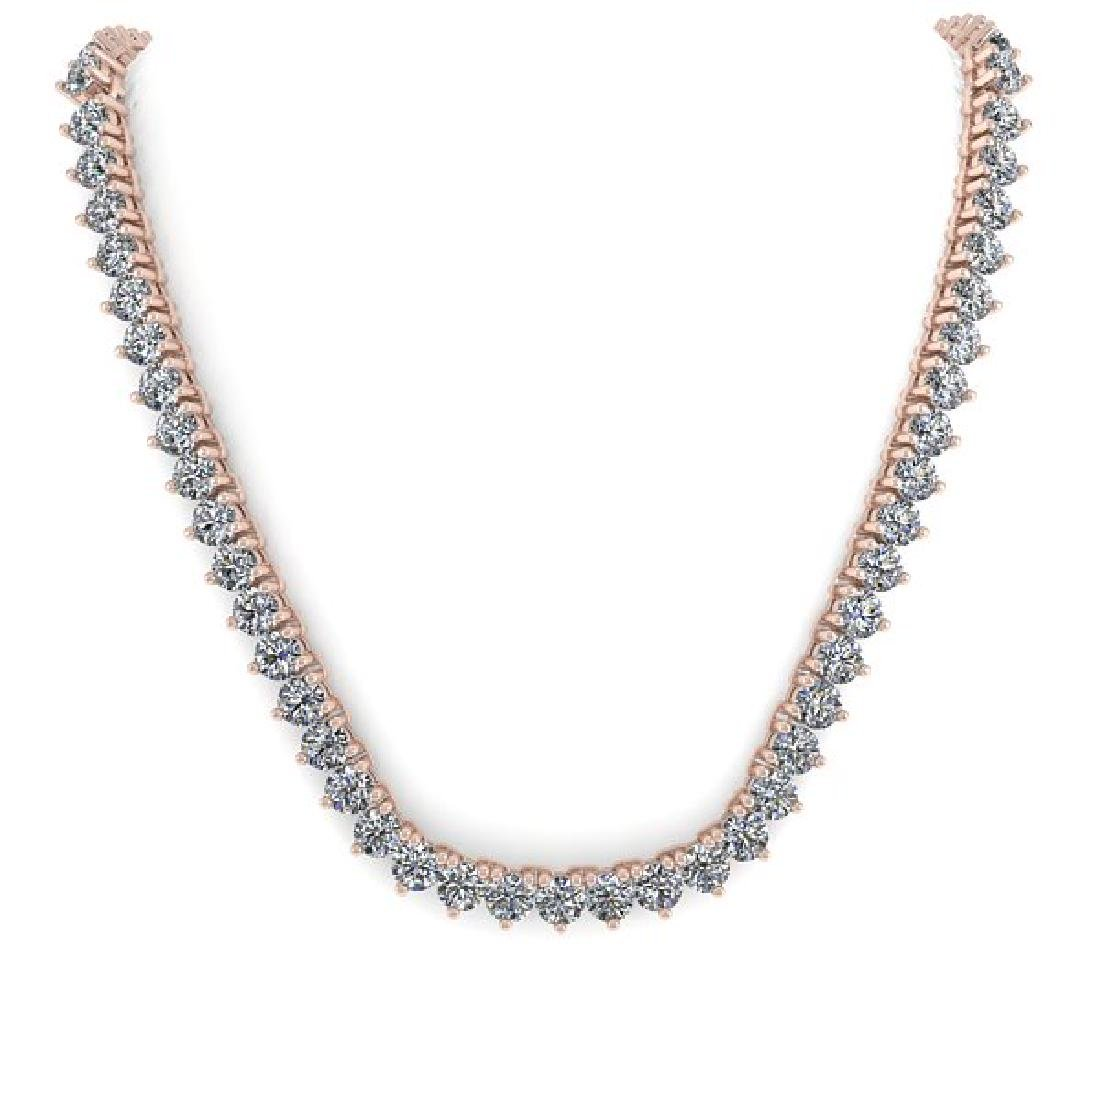 48 CTW Solitaire SI Diamond Necklace 14K Rose Gold - 2